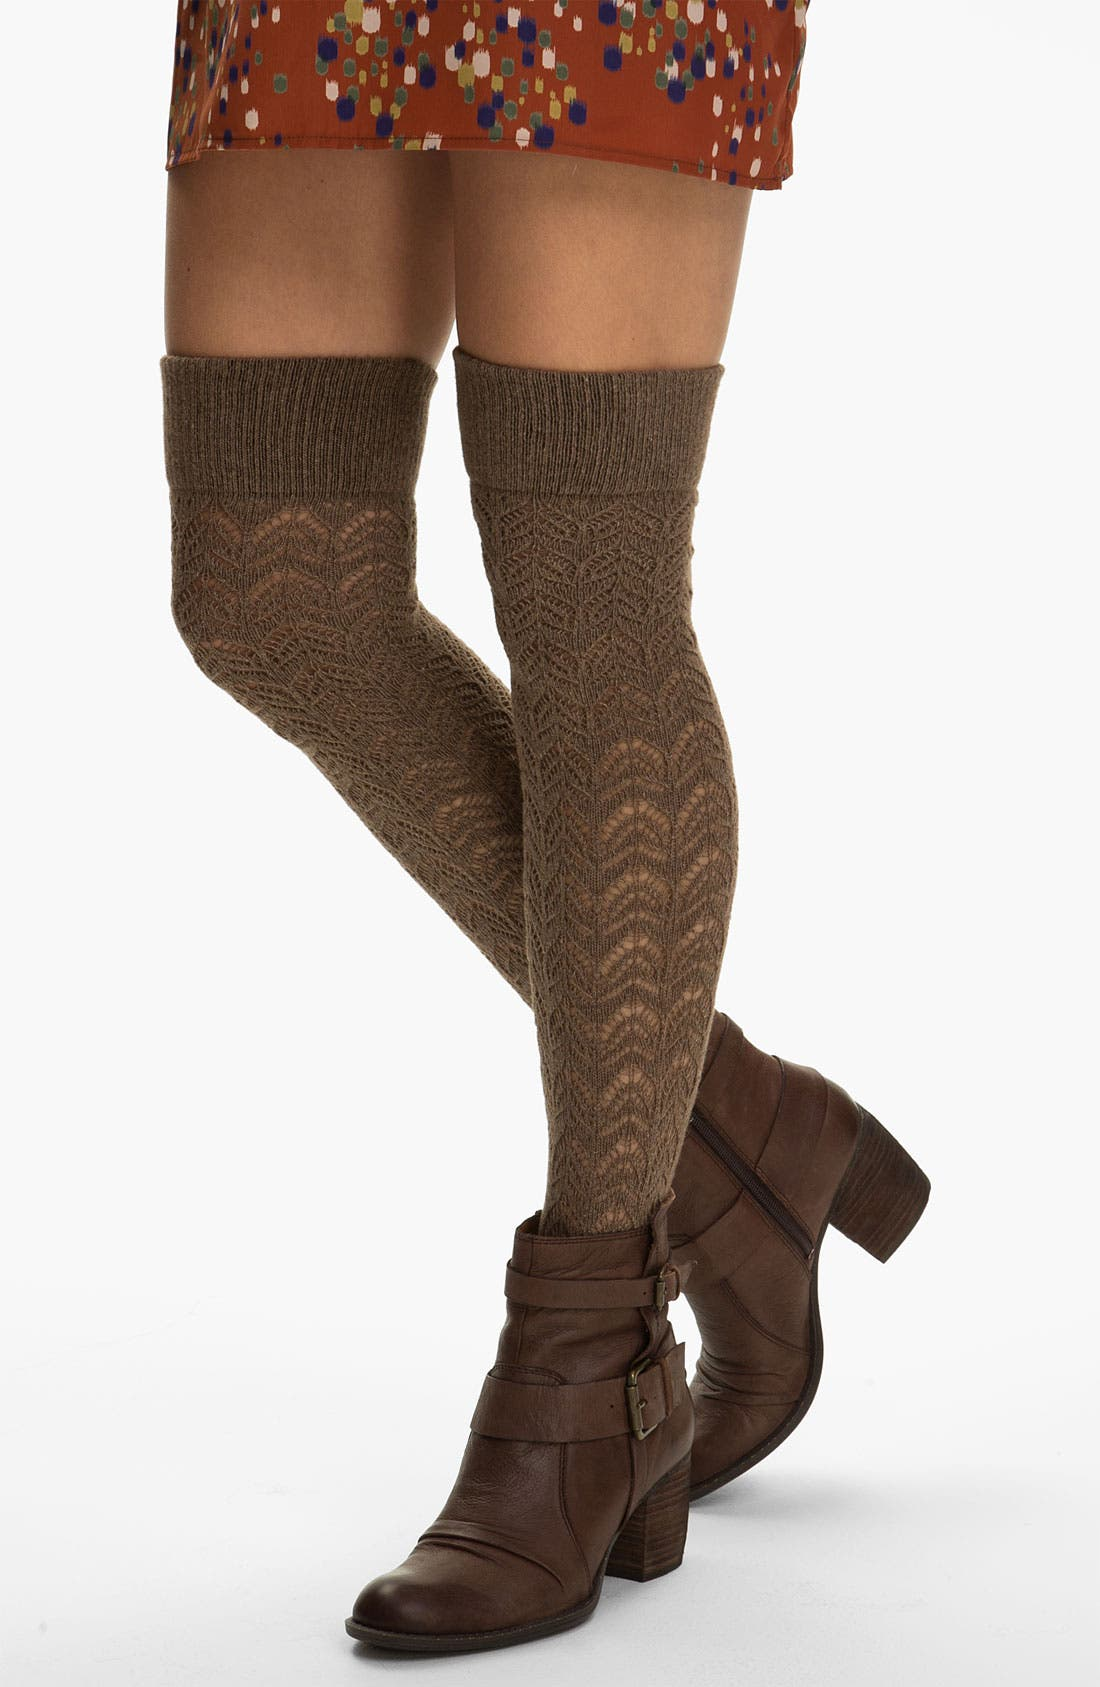 Alternate Image 1 Selected - Oroblu 'Calzerotto Fanette' Over the Knee Socks